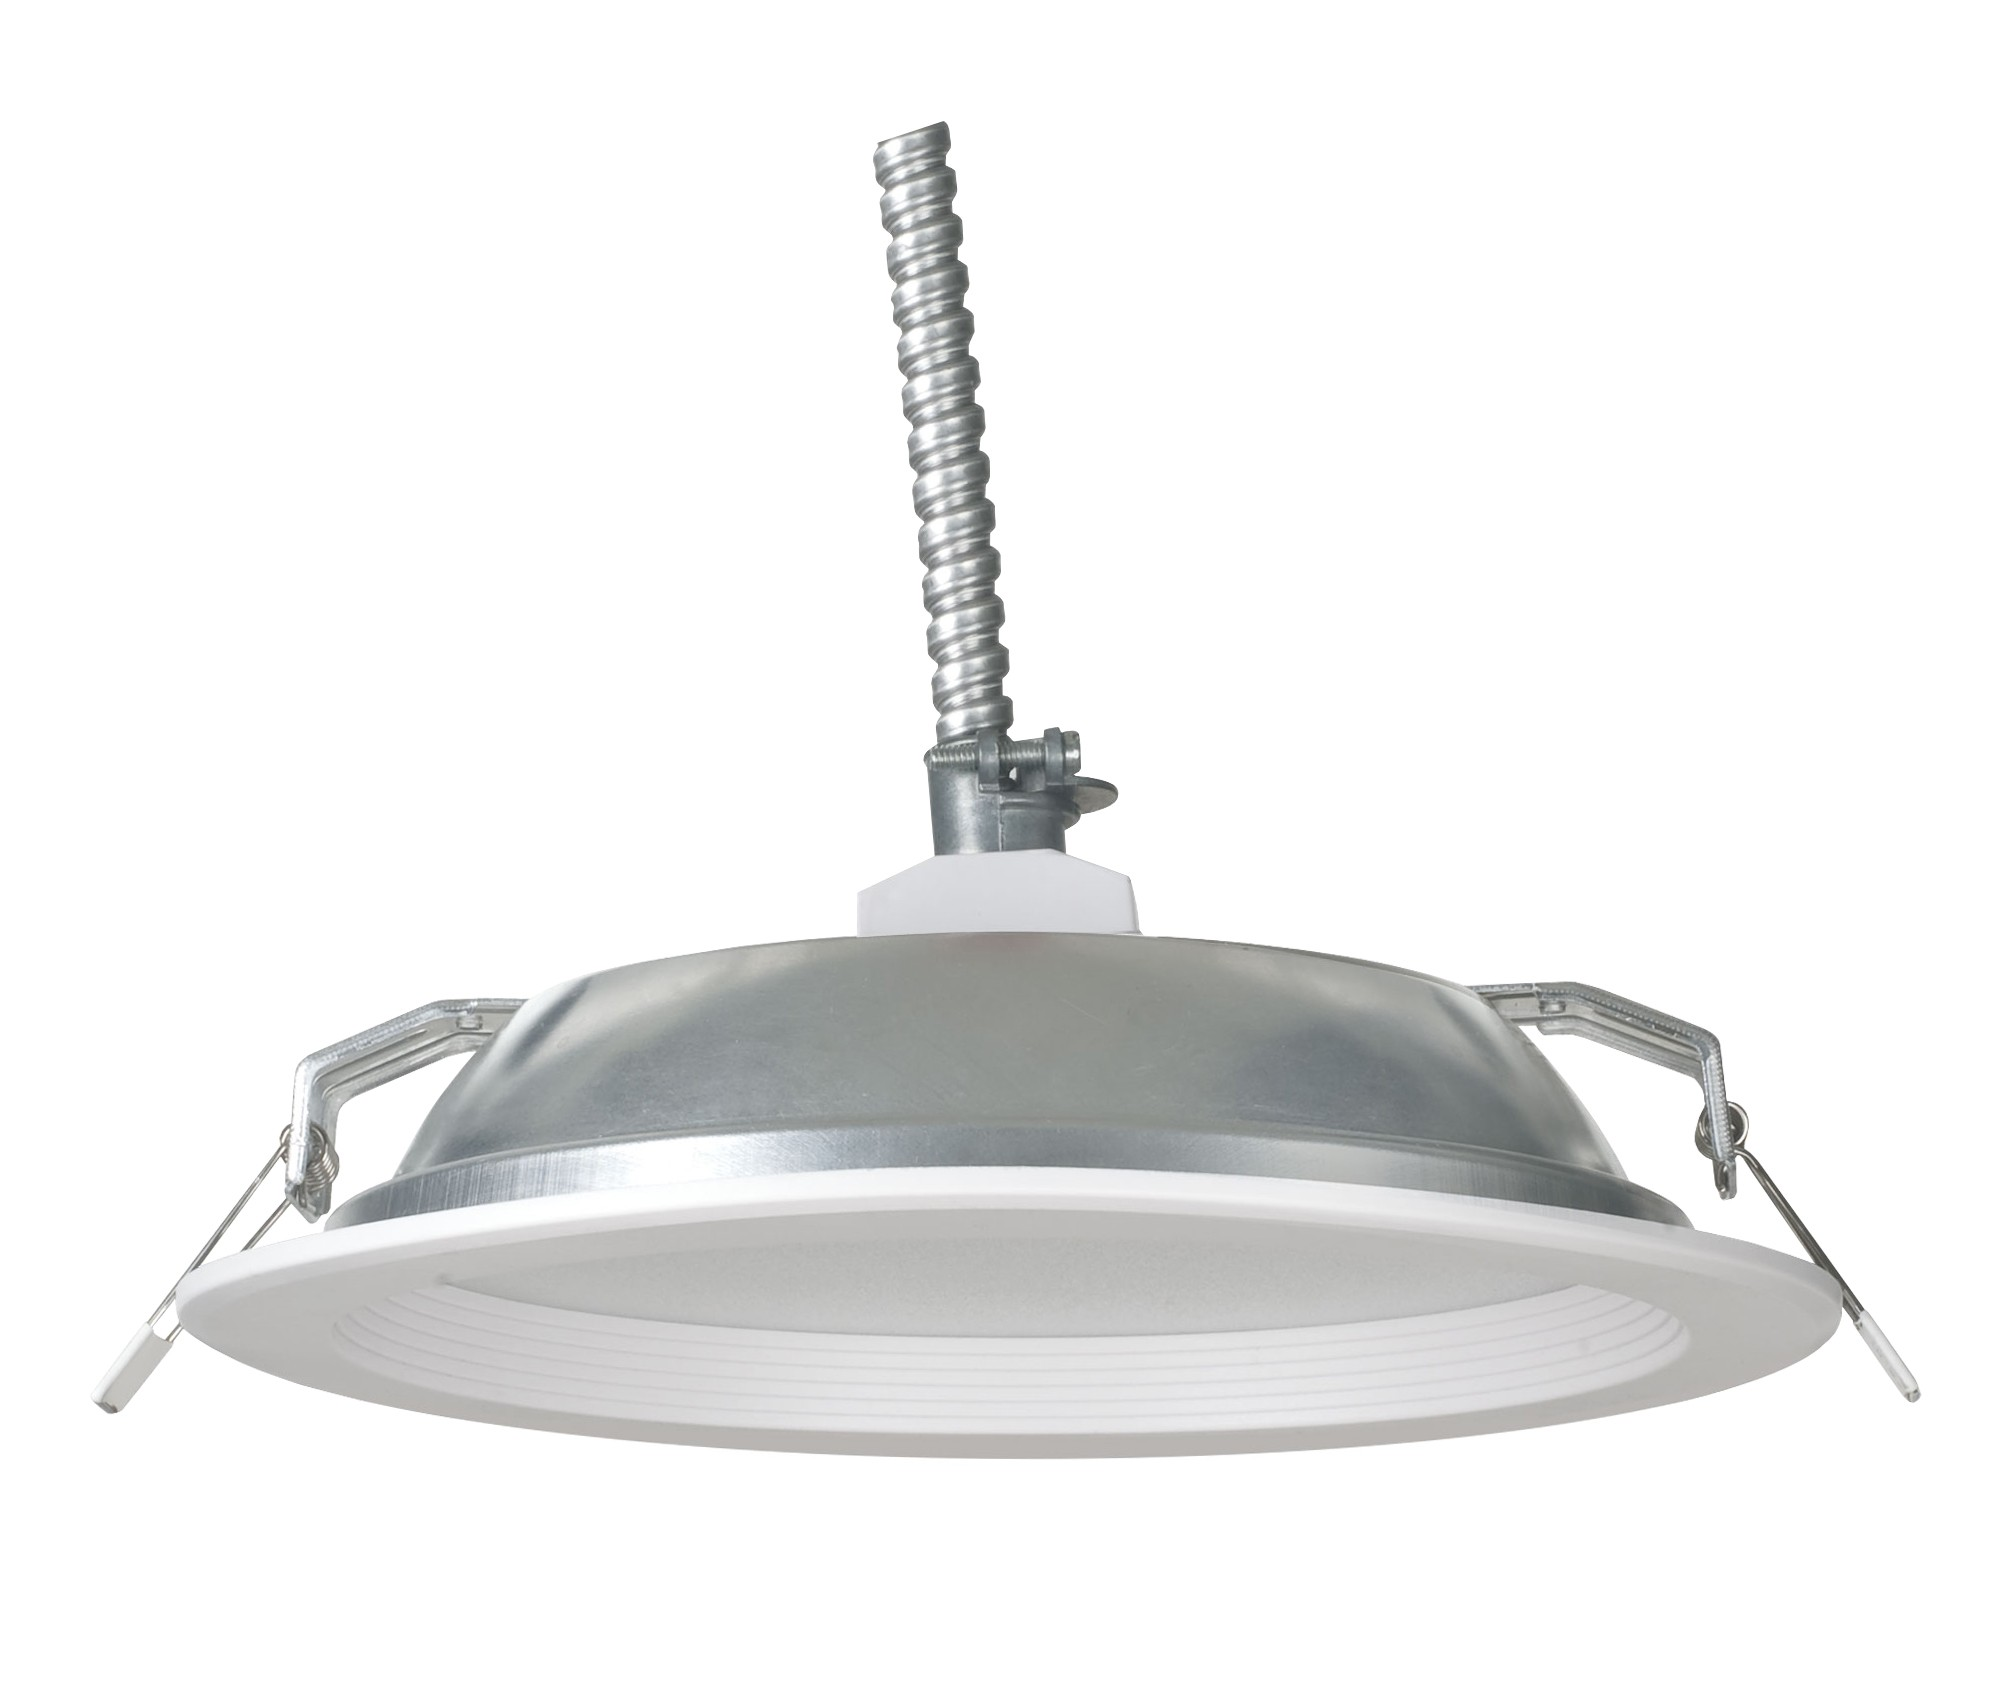 Liton Lrceld802 8 Commercial Shallow Led Retrofit 1300 Lumen Adjustable Fluorescent Lighting Fixtures On Wiring In Series Downloads